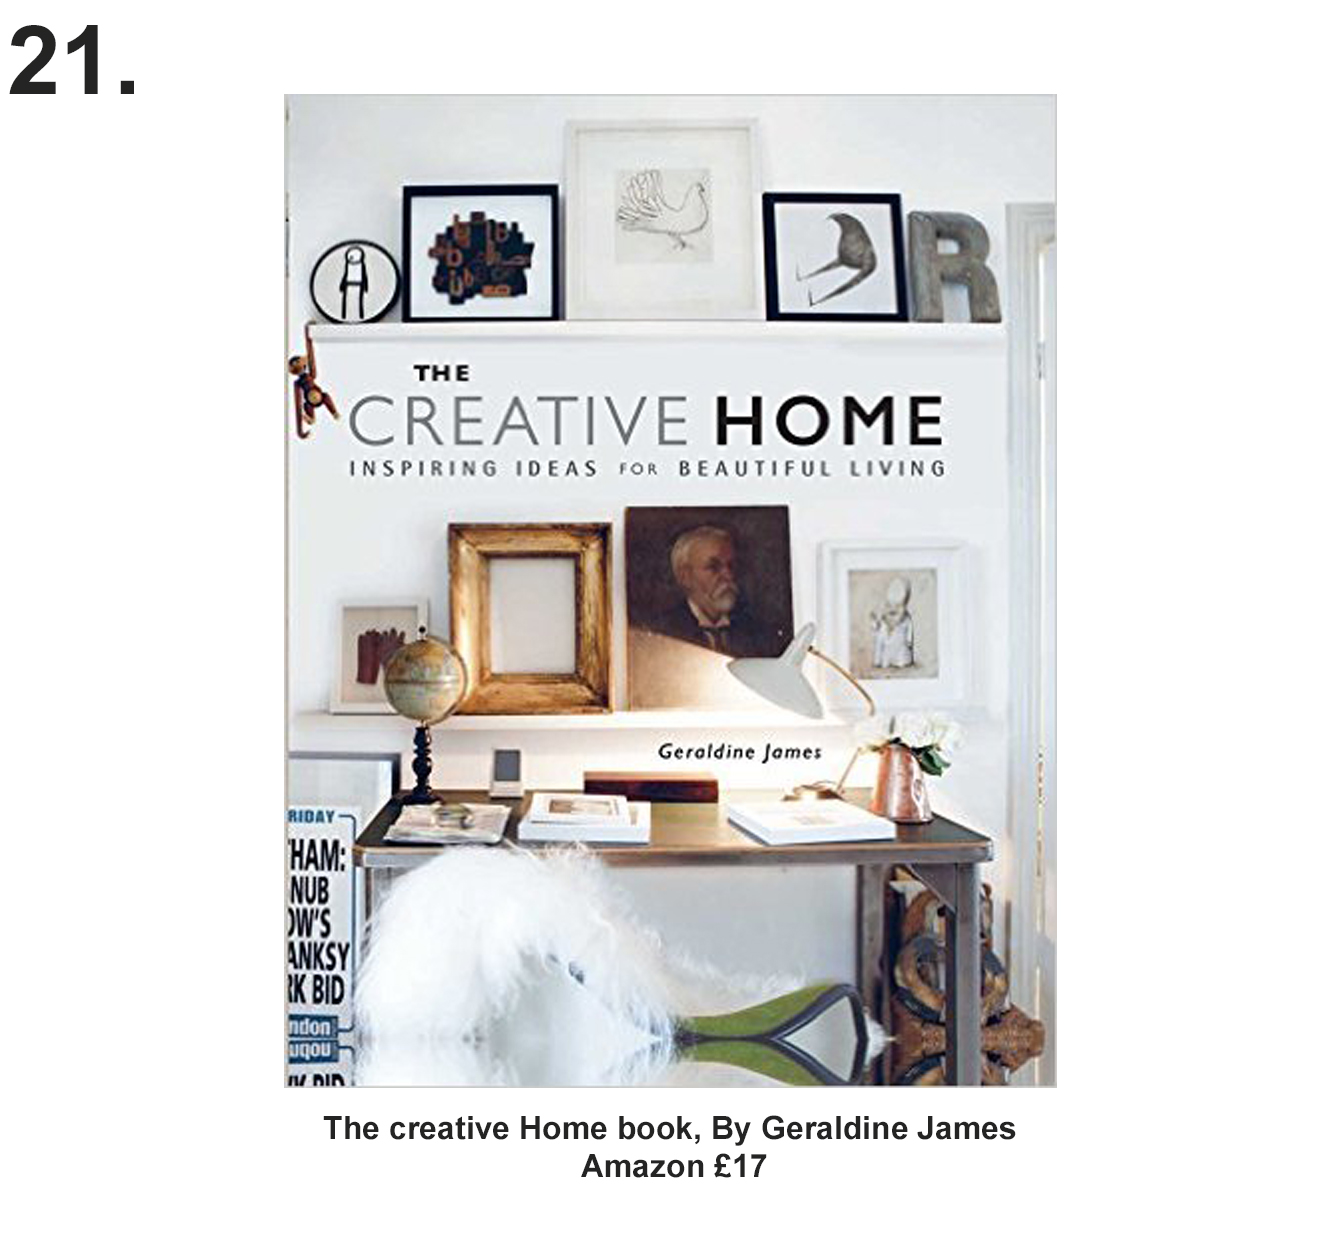 The Creative Home: Inspiring ideas for beautiful living £17